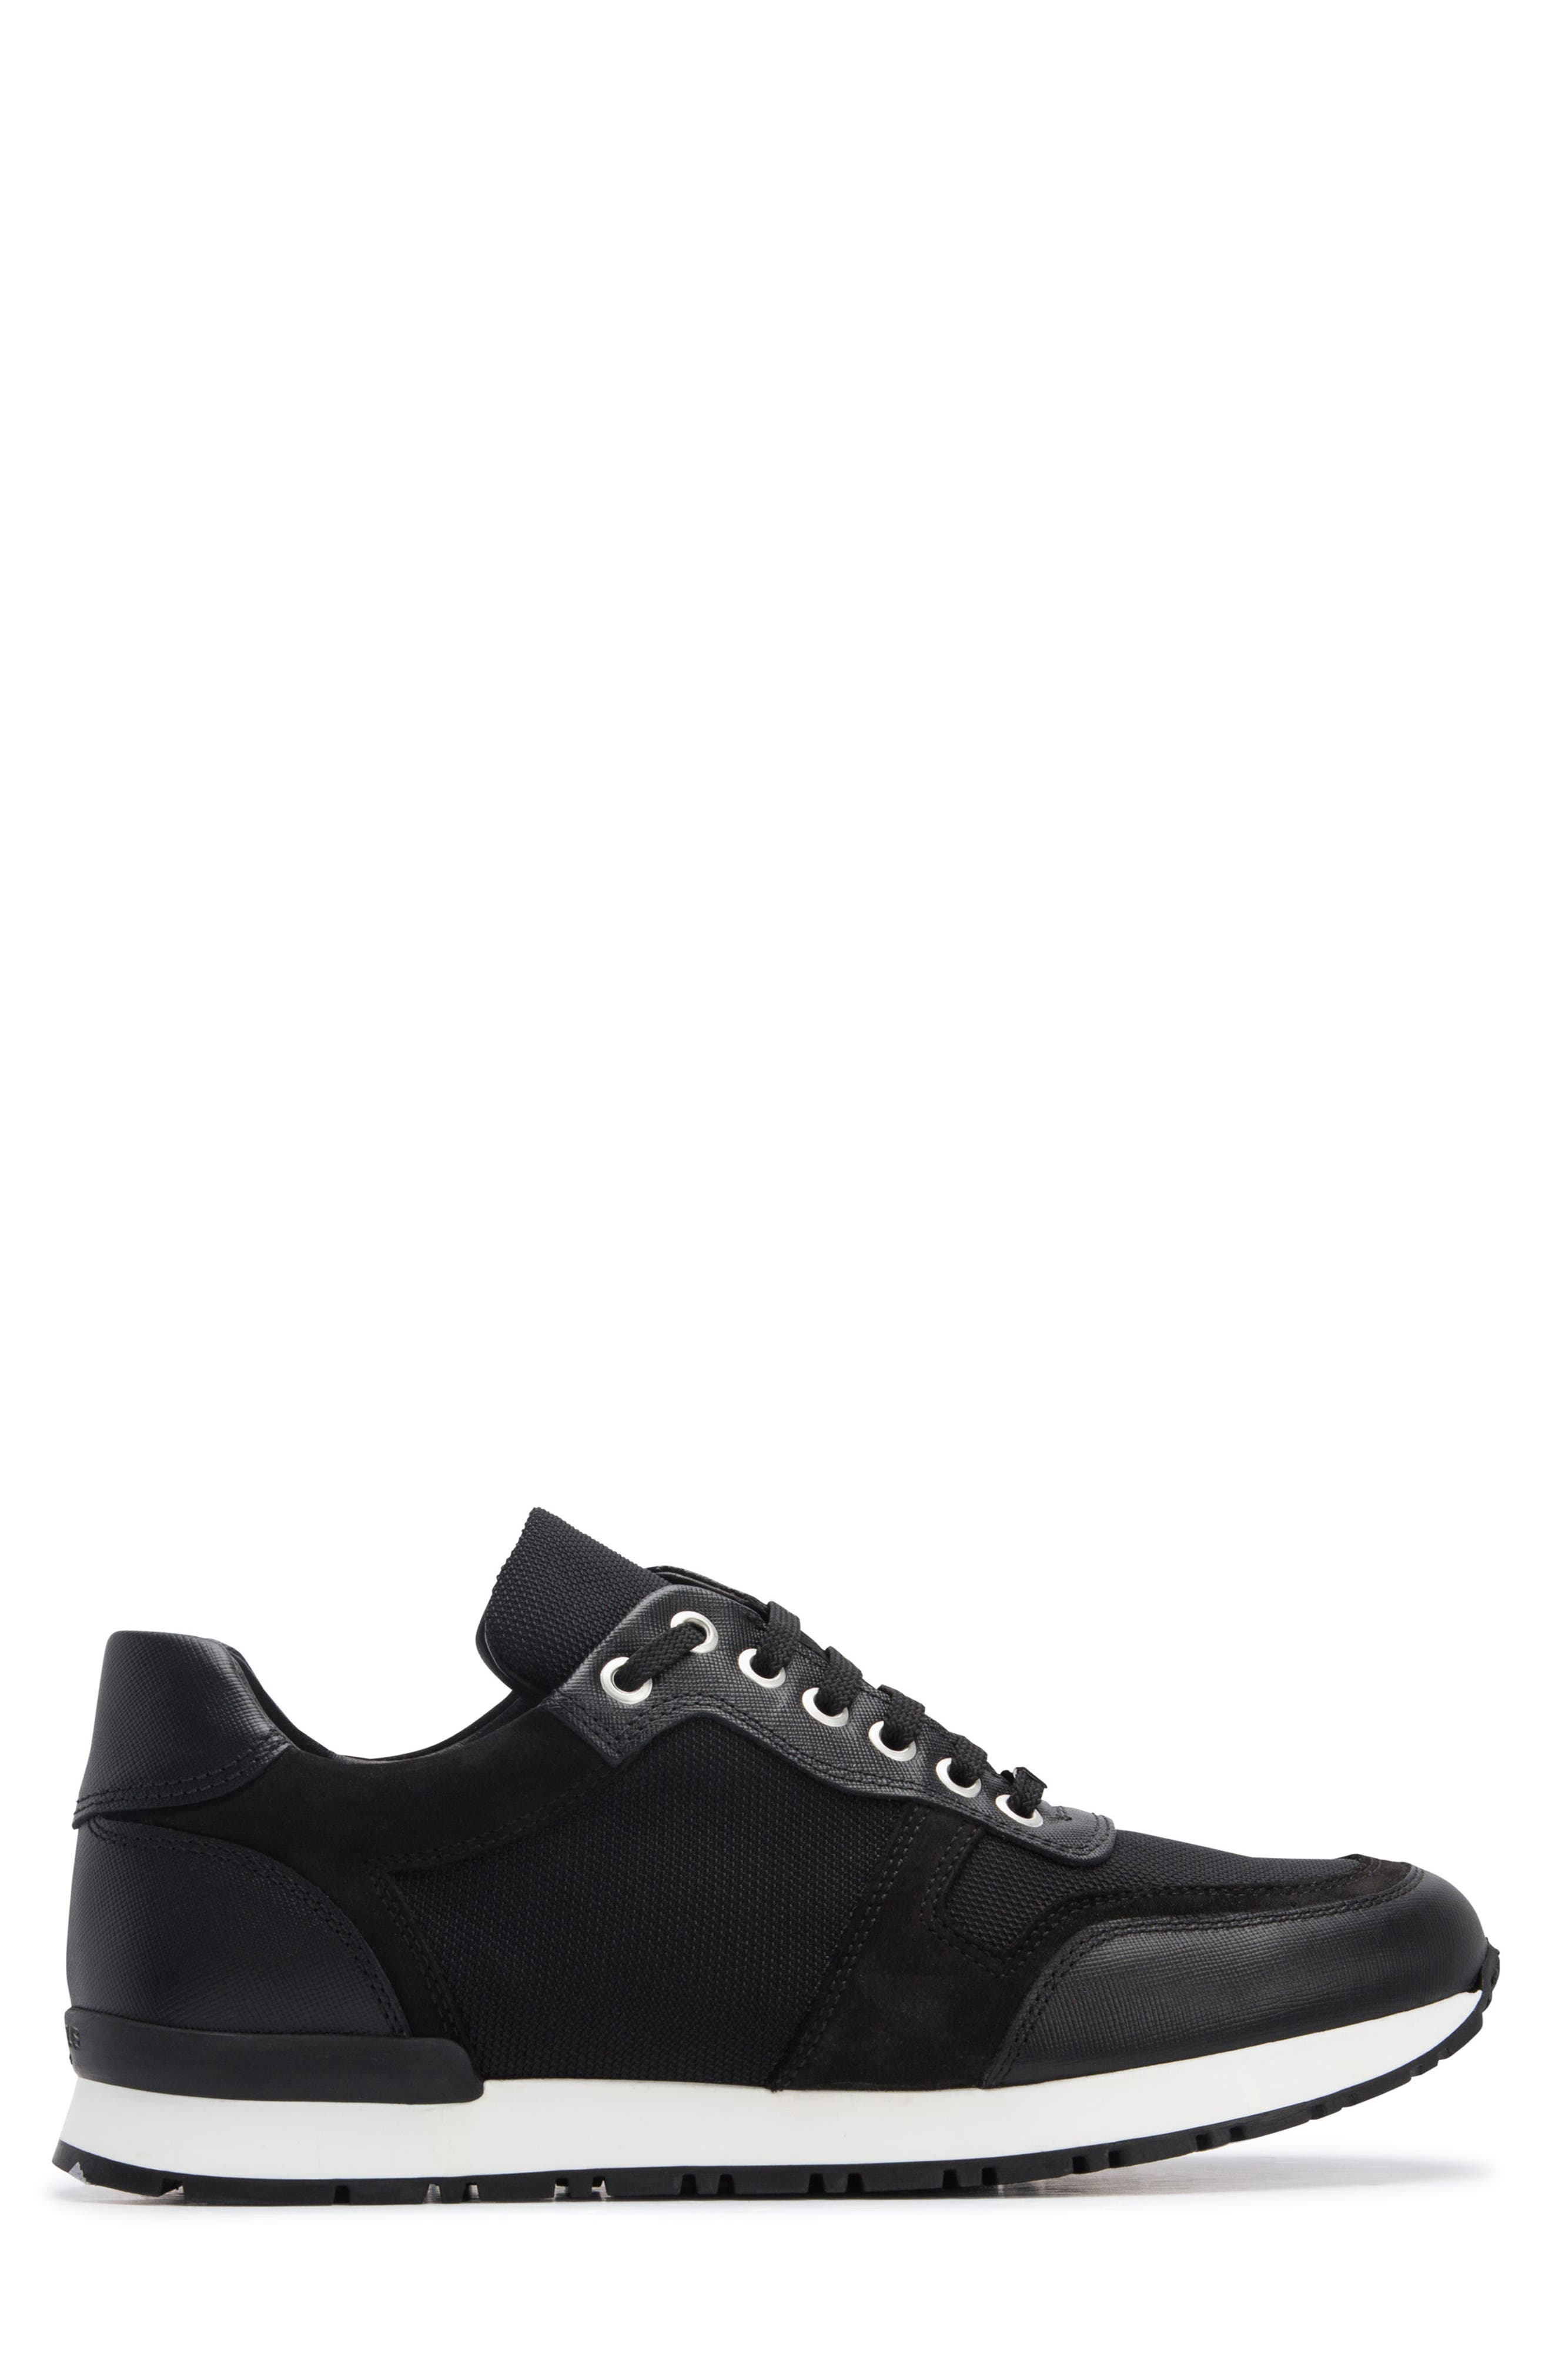 Modena Sneaker,                             Alternate thumbnail 3, color,                             NERO BLACK